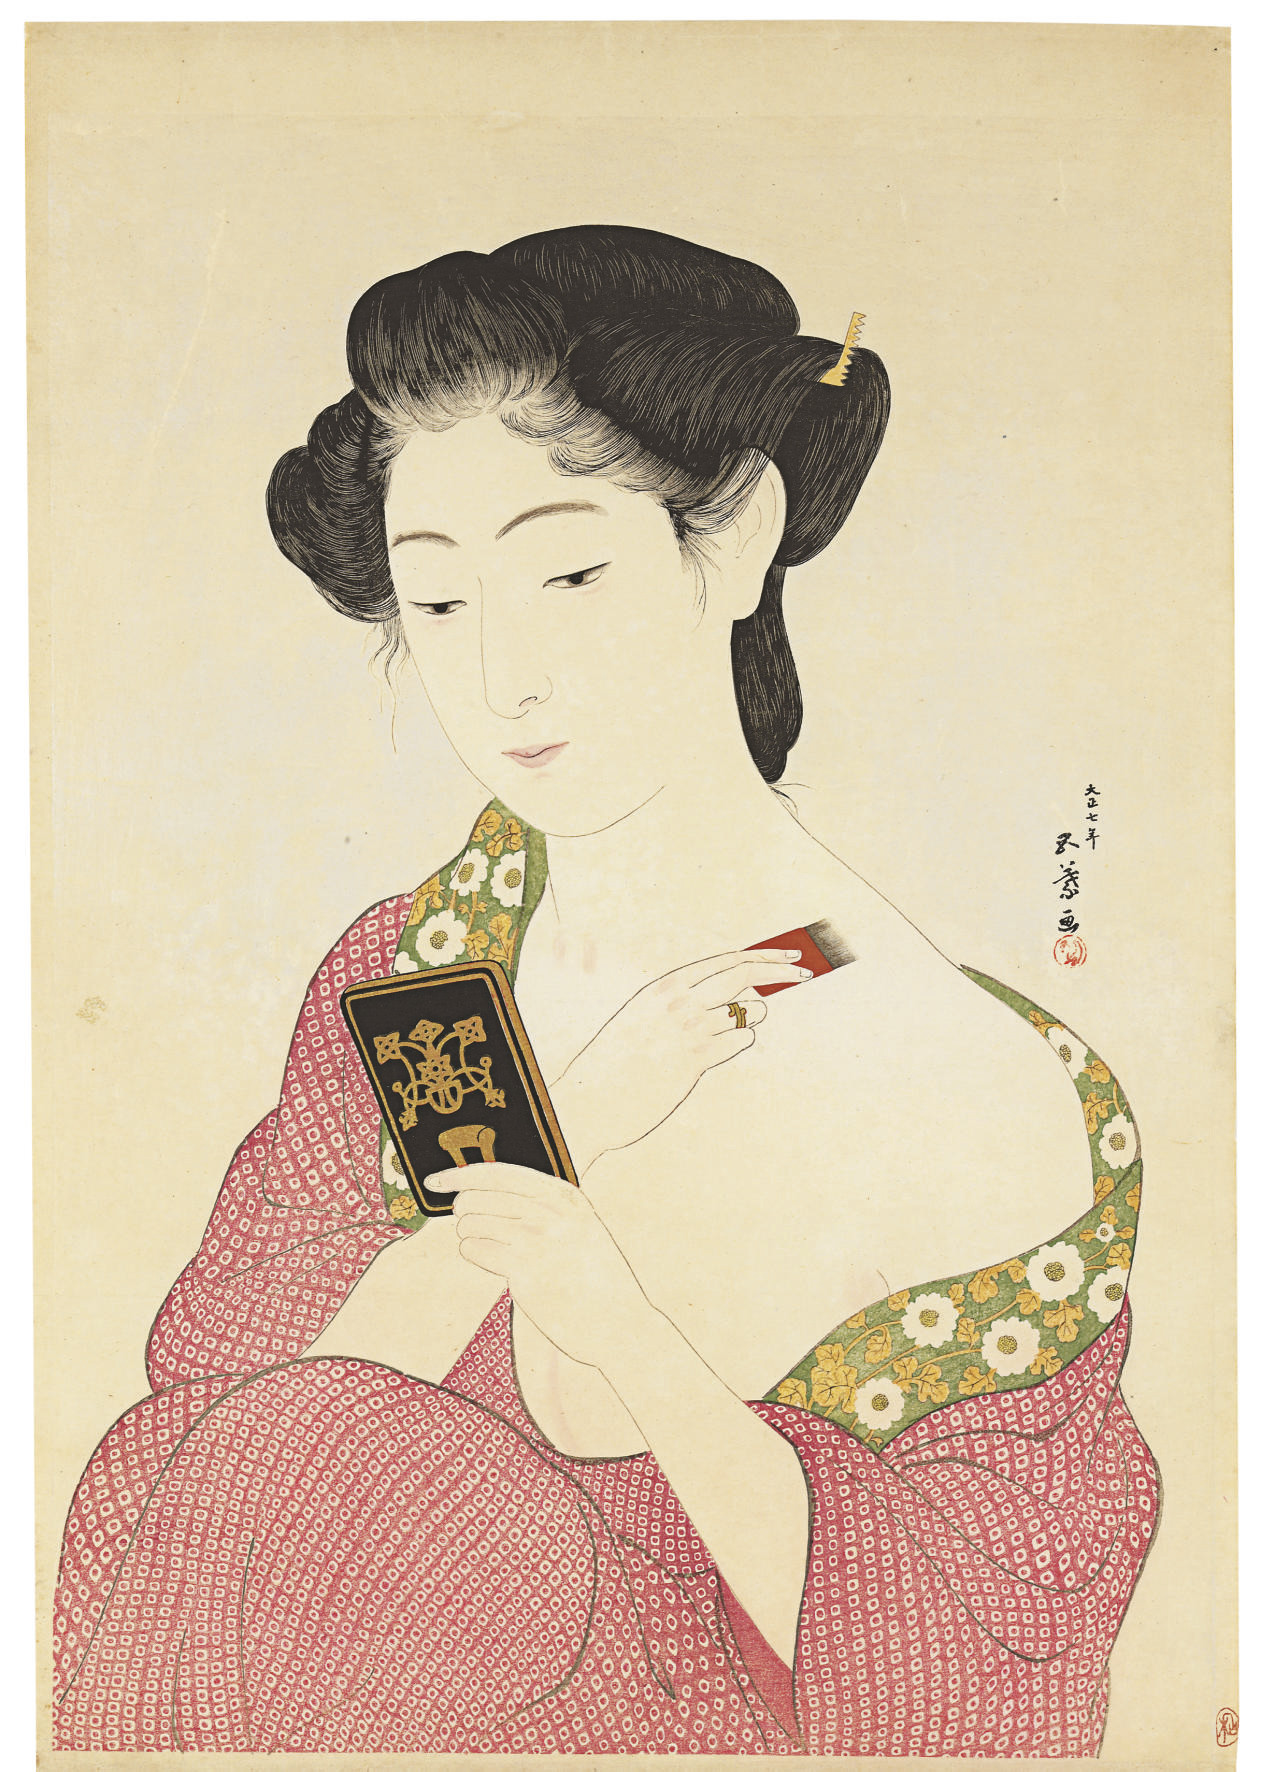 Kesho no onna (Woman applying make-up), 1918